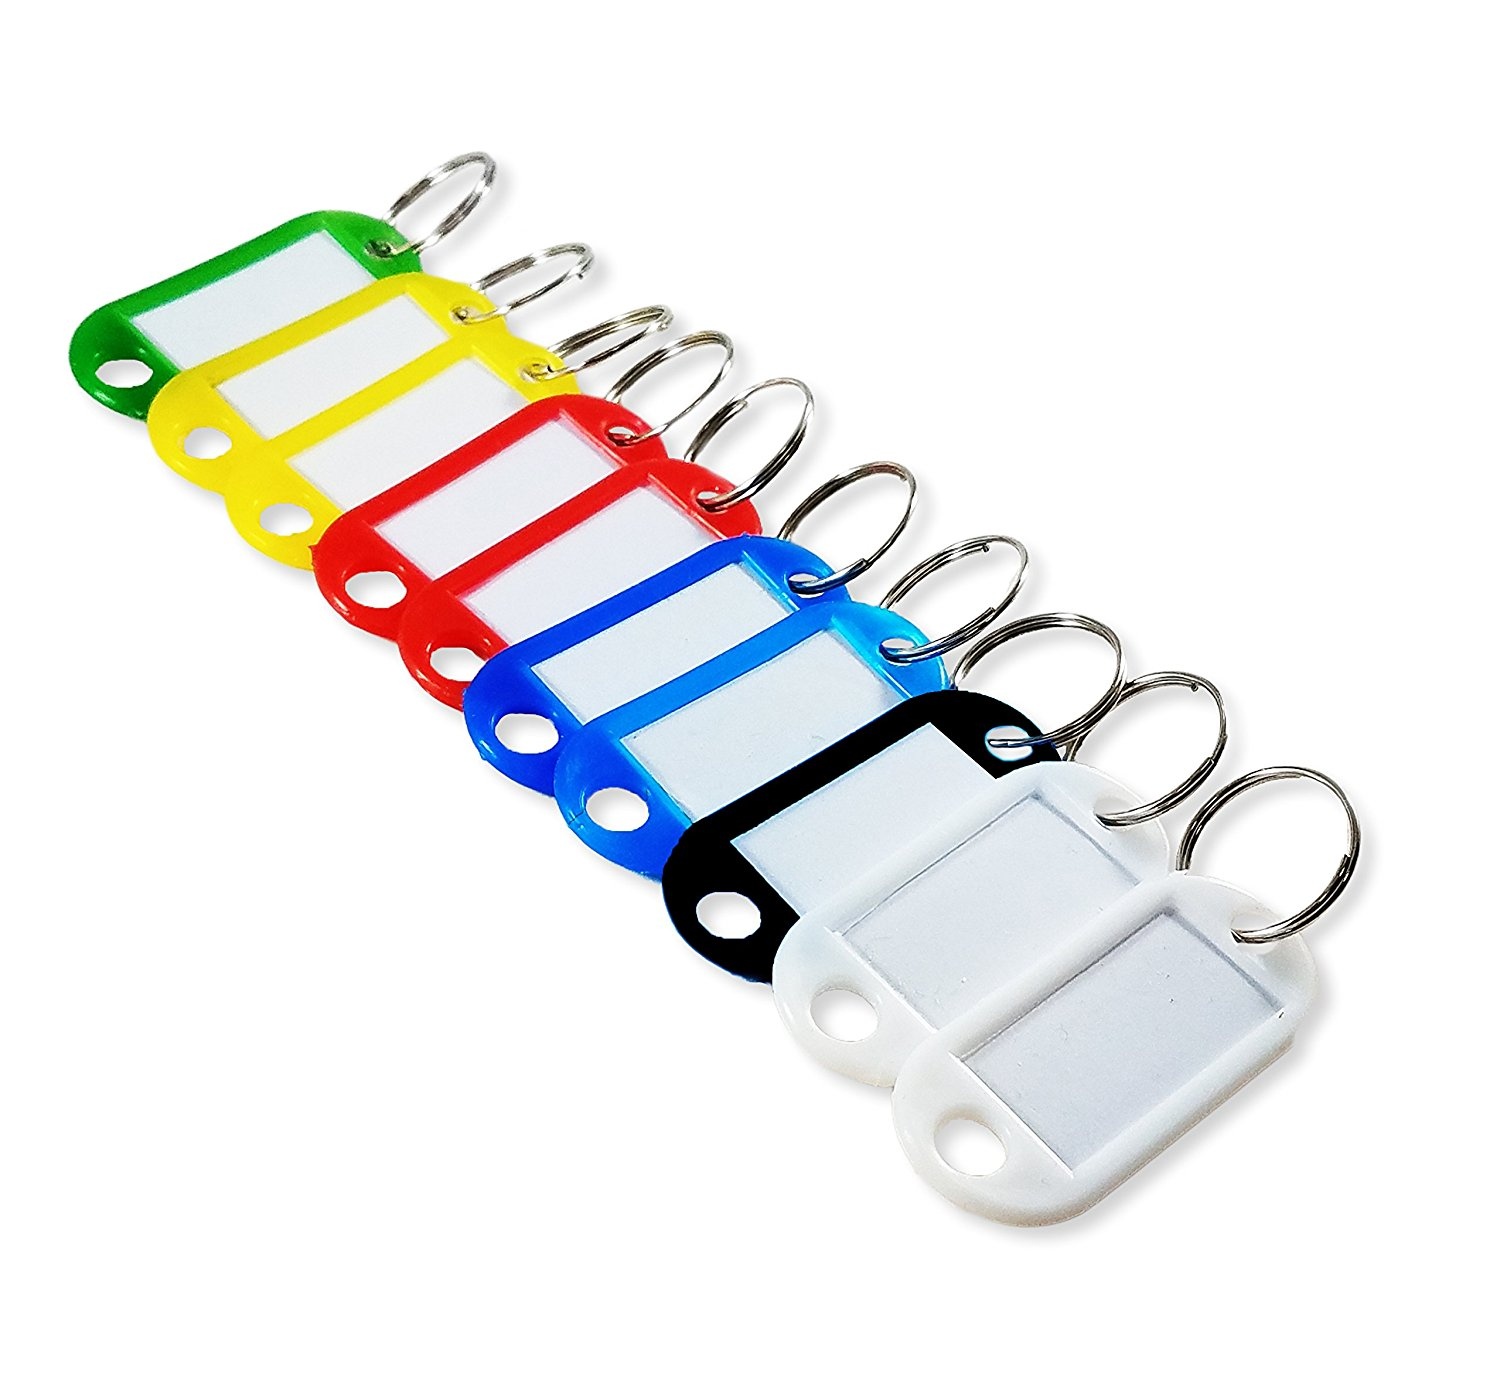 Key Tags with Split Ring & Label Window, ID Luggage Tags - Soft Plastic, Single Colors, by Better Crafts (Yellow, 30 pieces)